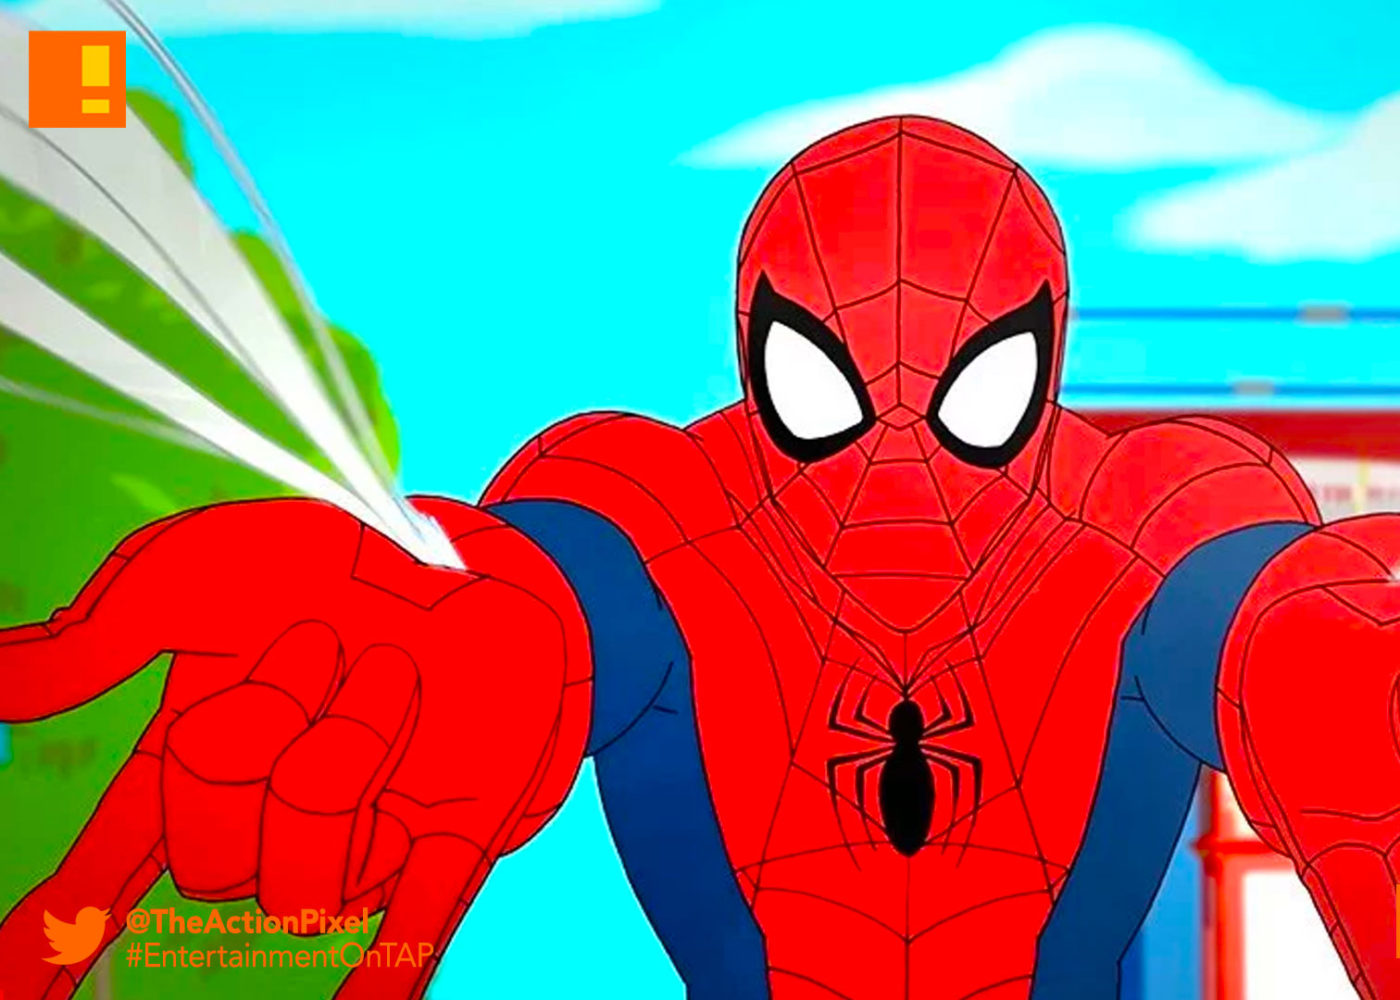 spider man, disney, marvel, disney xd, sneak peek, preview, peter parker, scorpion, nyc subway, the action pixel, entertainment on tap